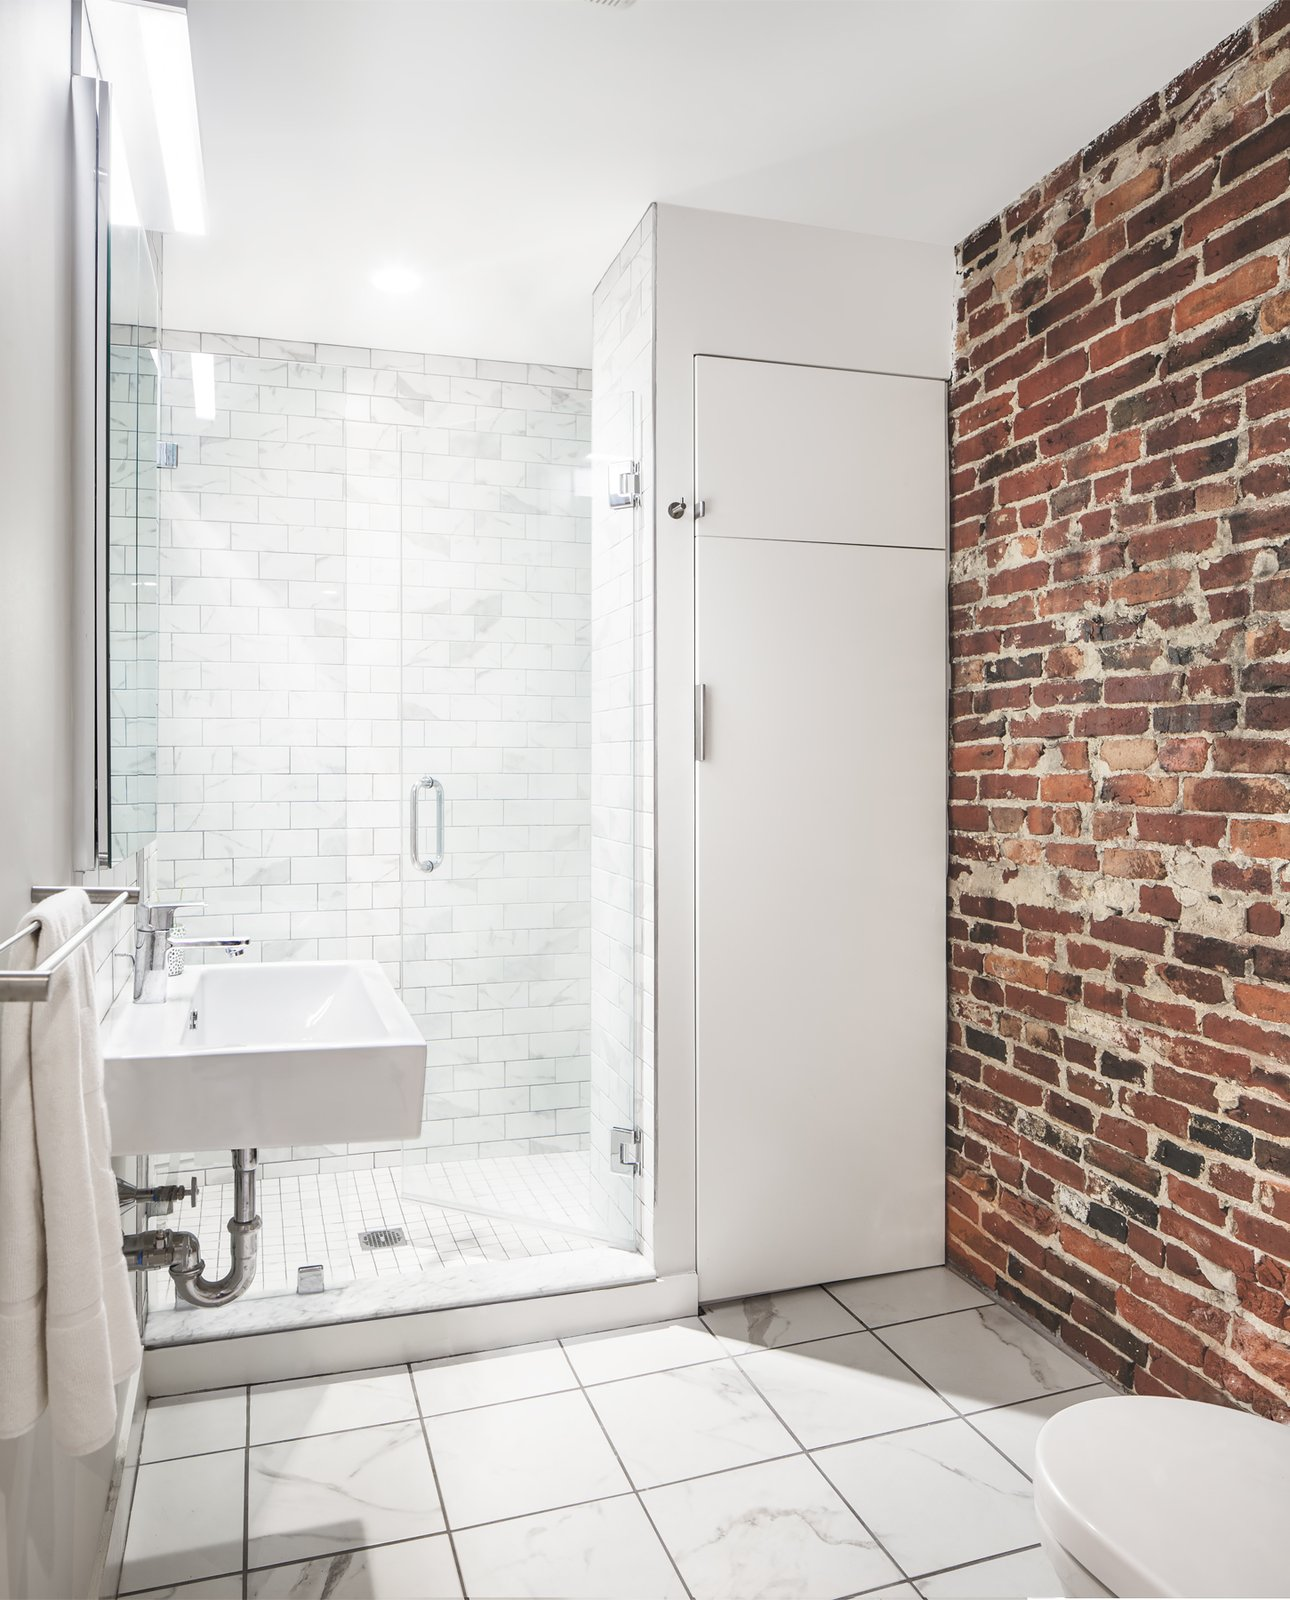 Along with historic wood and steel details, several warm brick walls were exhumed and left exposed. Tagged: Bath Room, Enclosed Shower, Porcelain Tile Floor, and Wall Mount Sink.  Bathroom by Solarwise from Beacon Hill